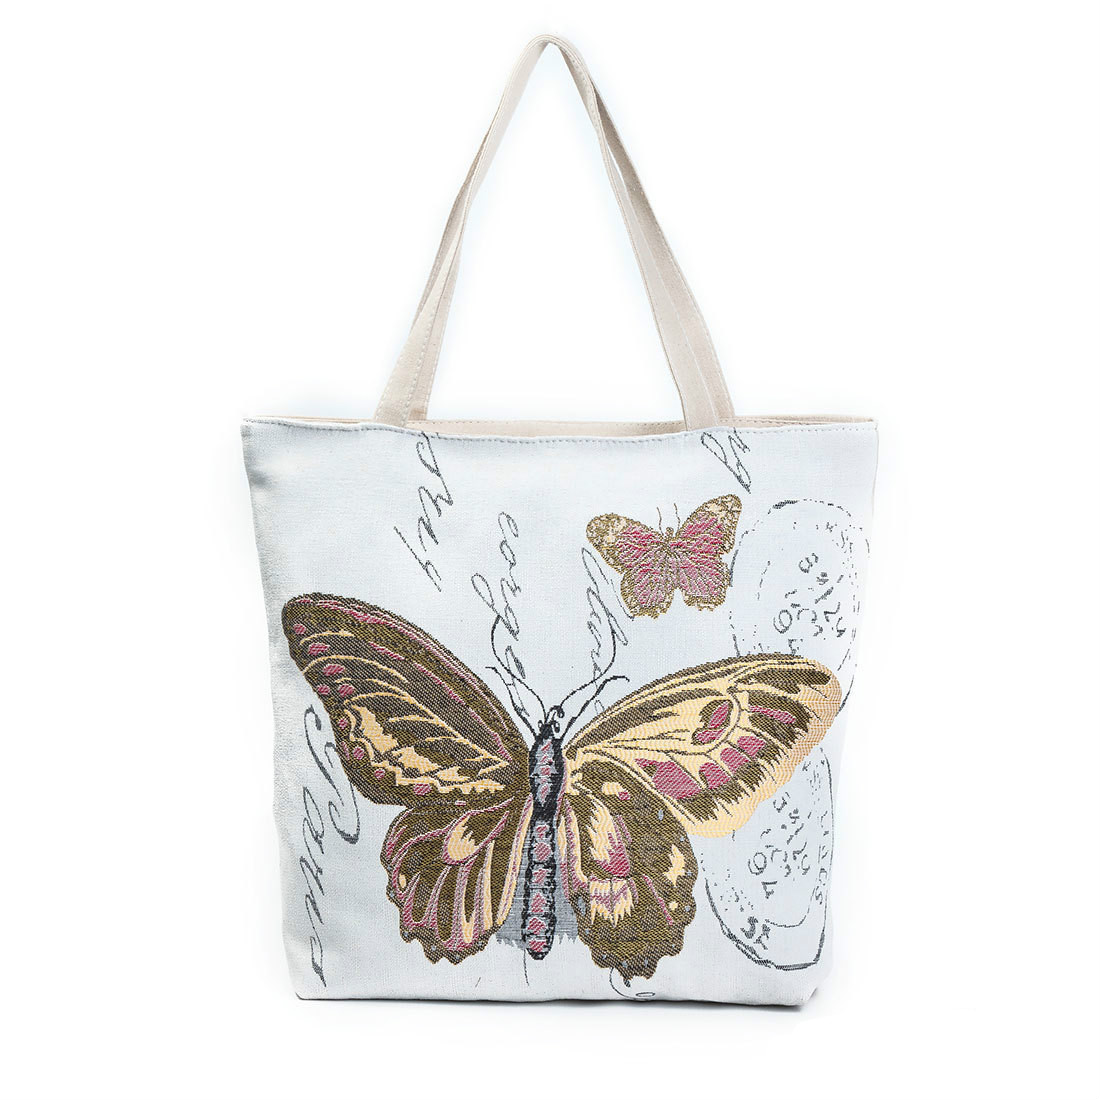 Butterfly Printed Shoulder Bag Large Capacity Casual Tote Bags Women Daily Use Shopping Bag Canvas Handbag